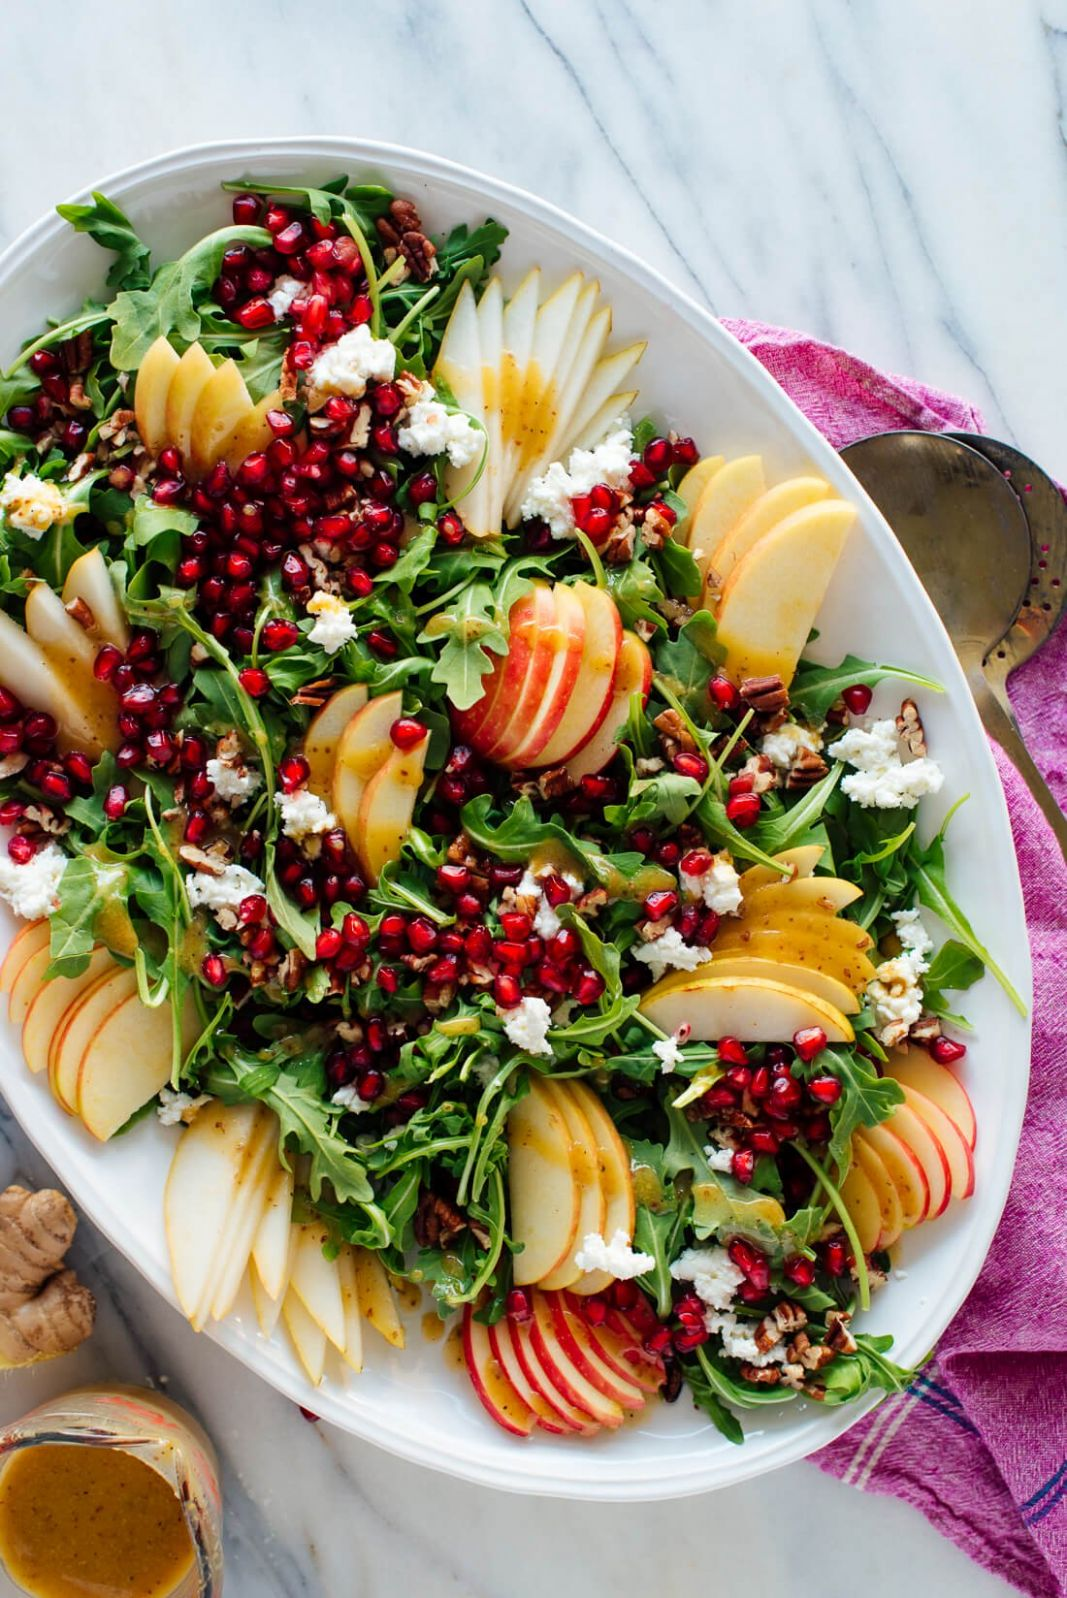 Pomegranate & Pear Green Salad with Ginger Dressing - Cookie and Kate - Salad Recipes For Dinner Party